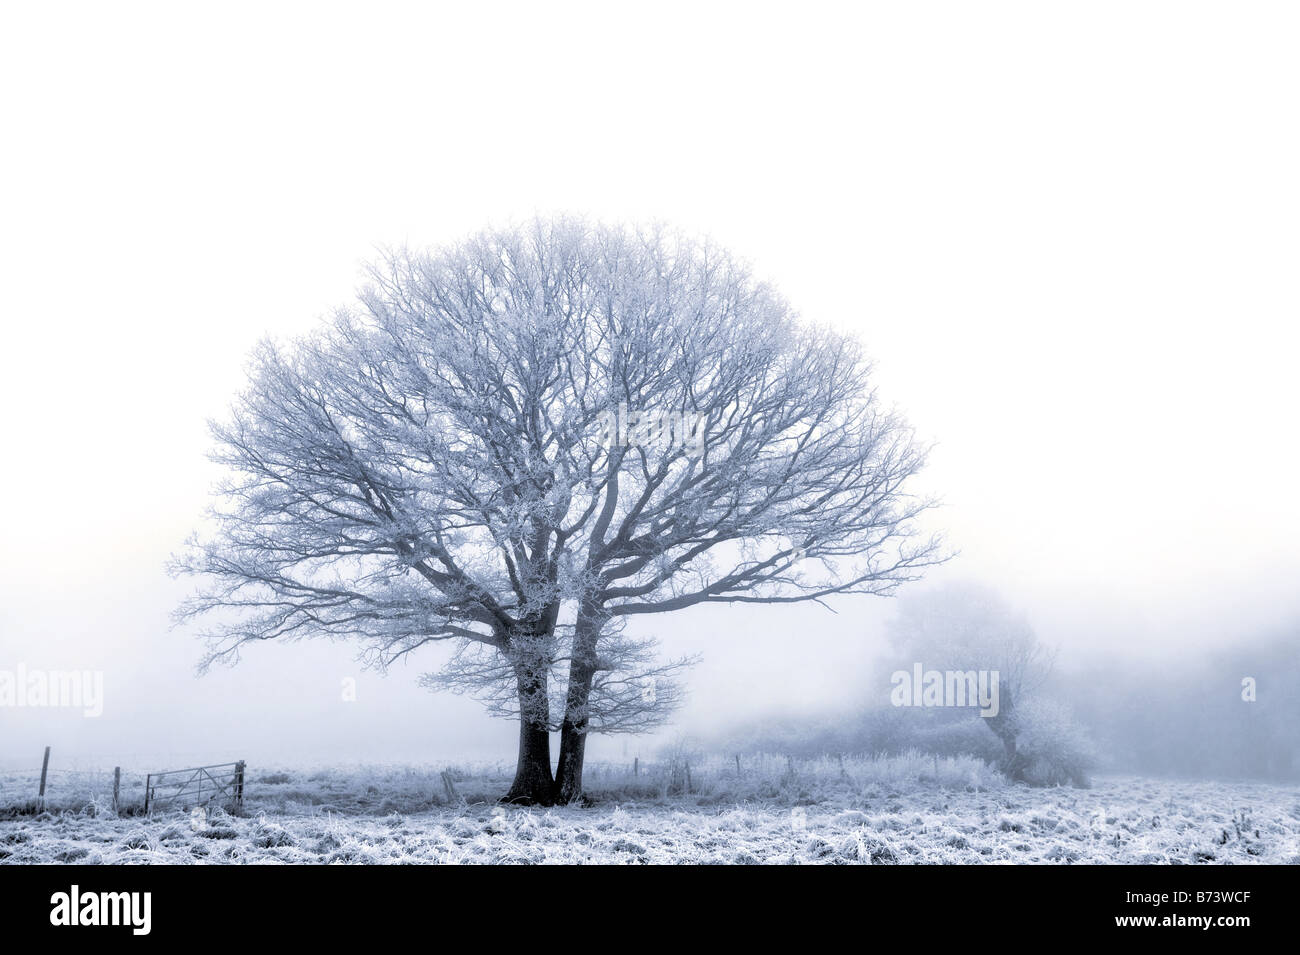 An old oak tree covered in a hoare frost on a cold foggy winters day - Stock Image